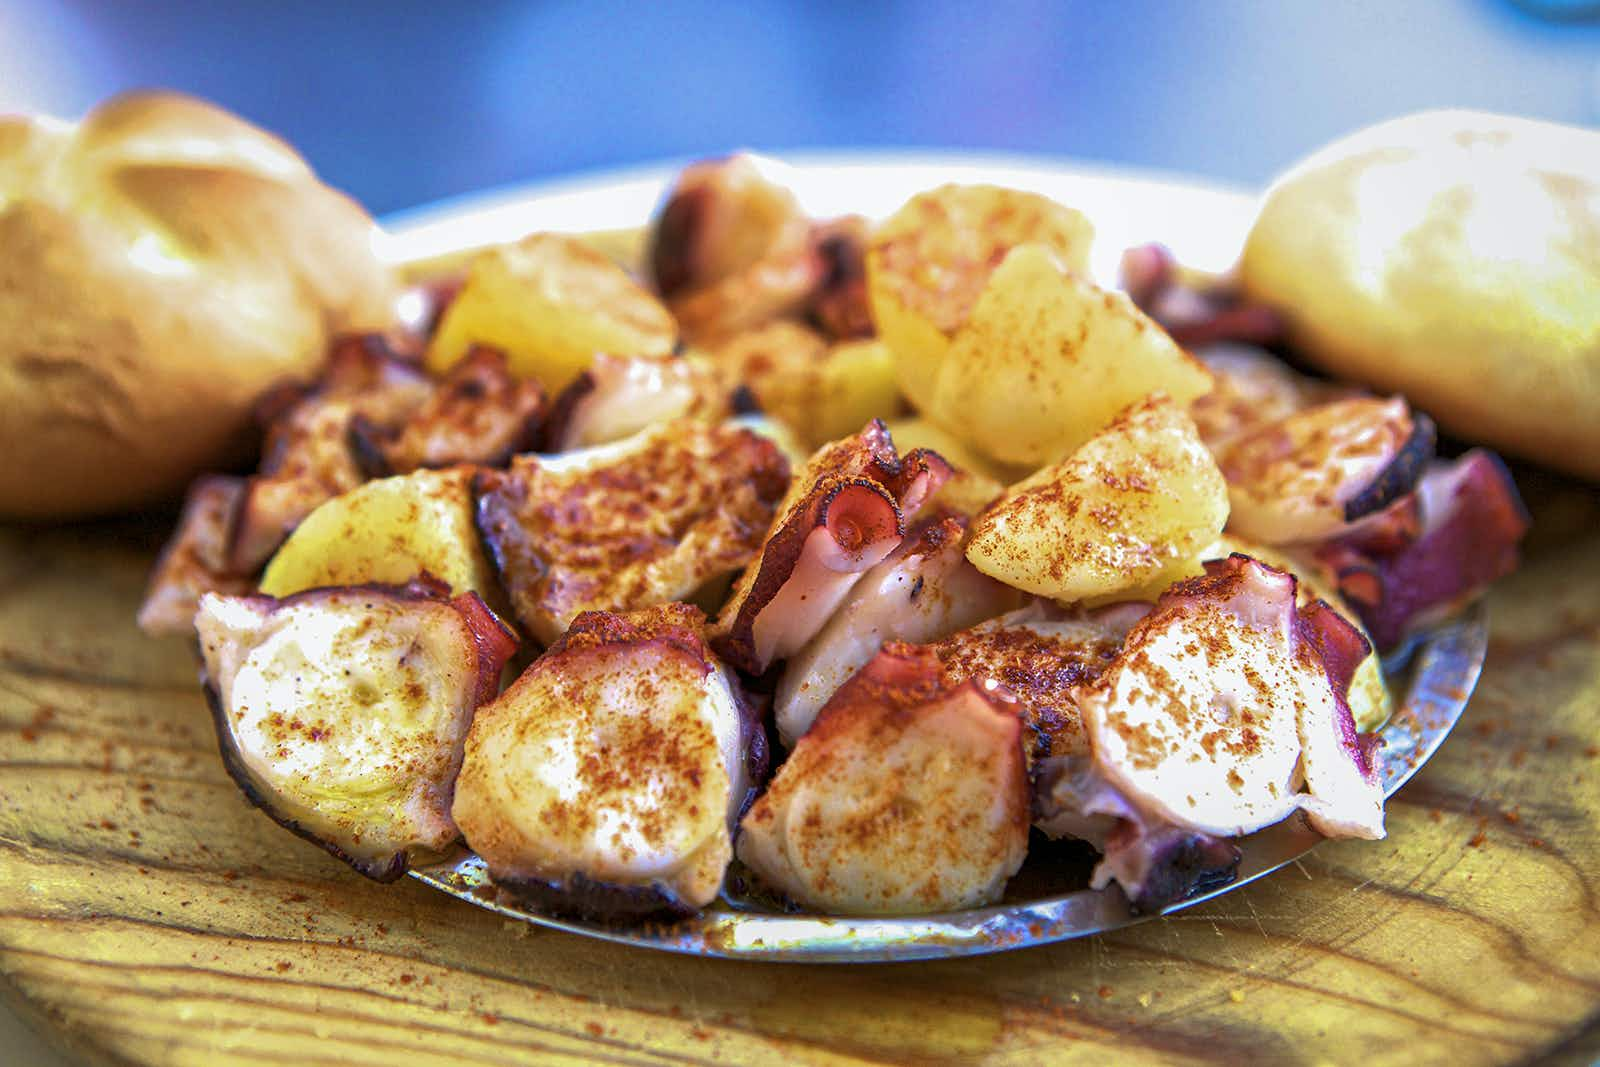 Taste the best of Cádiz: seafood, sherry and southern Spanish cuisine